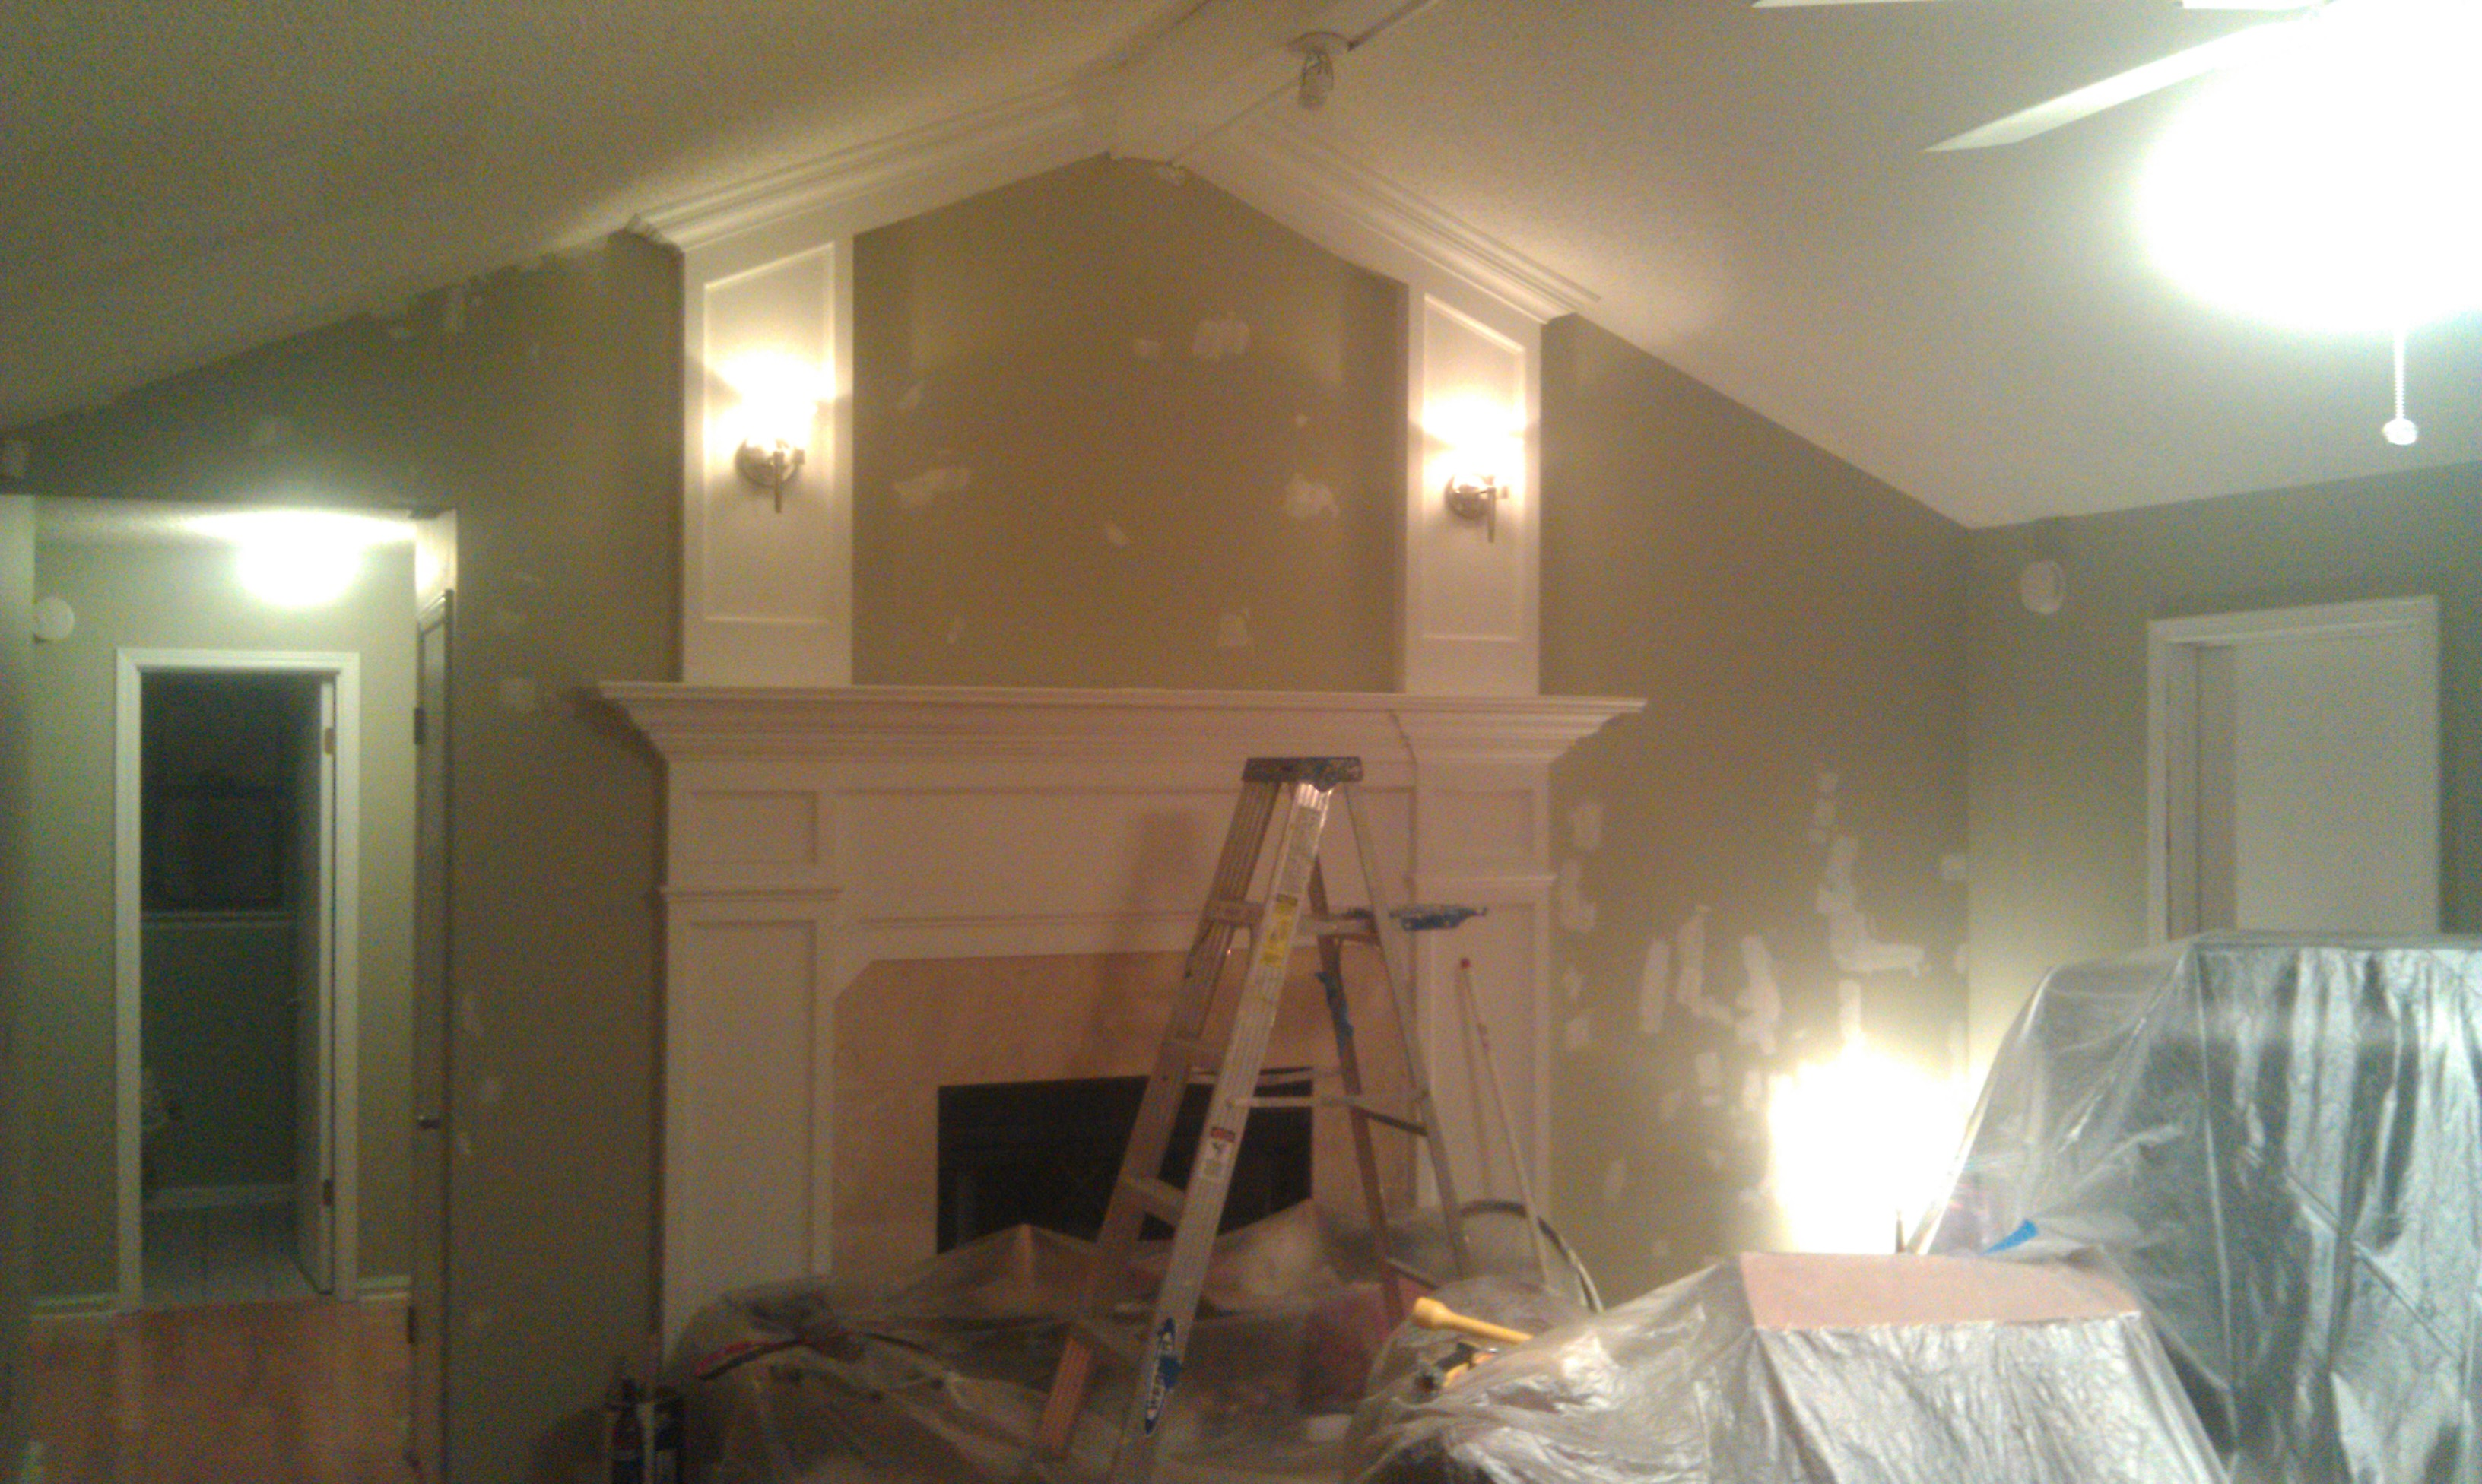 Custom Paint Jobs From Jacksonville Home Renovation Expert